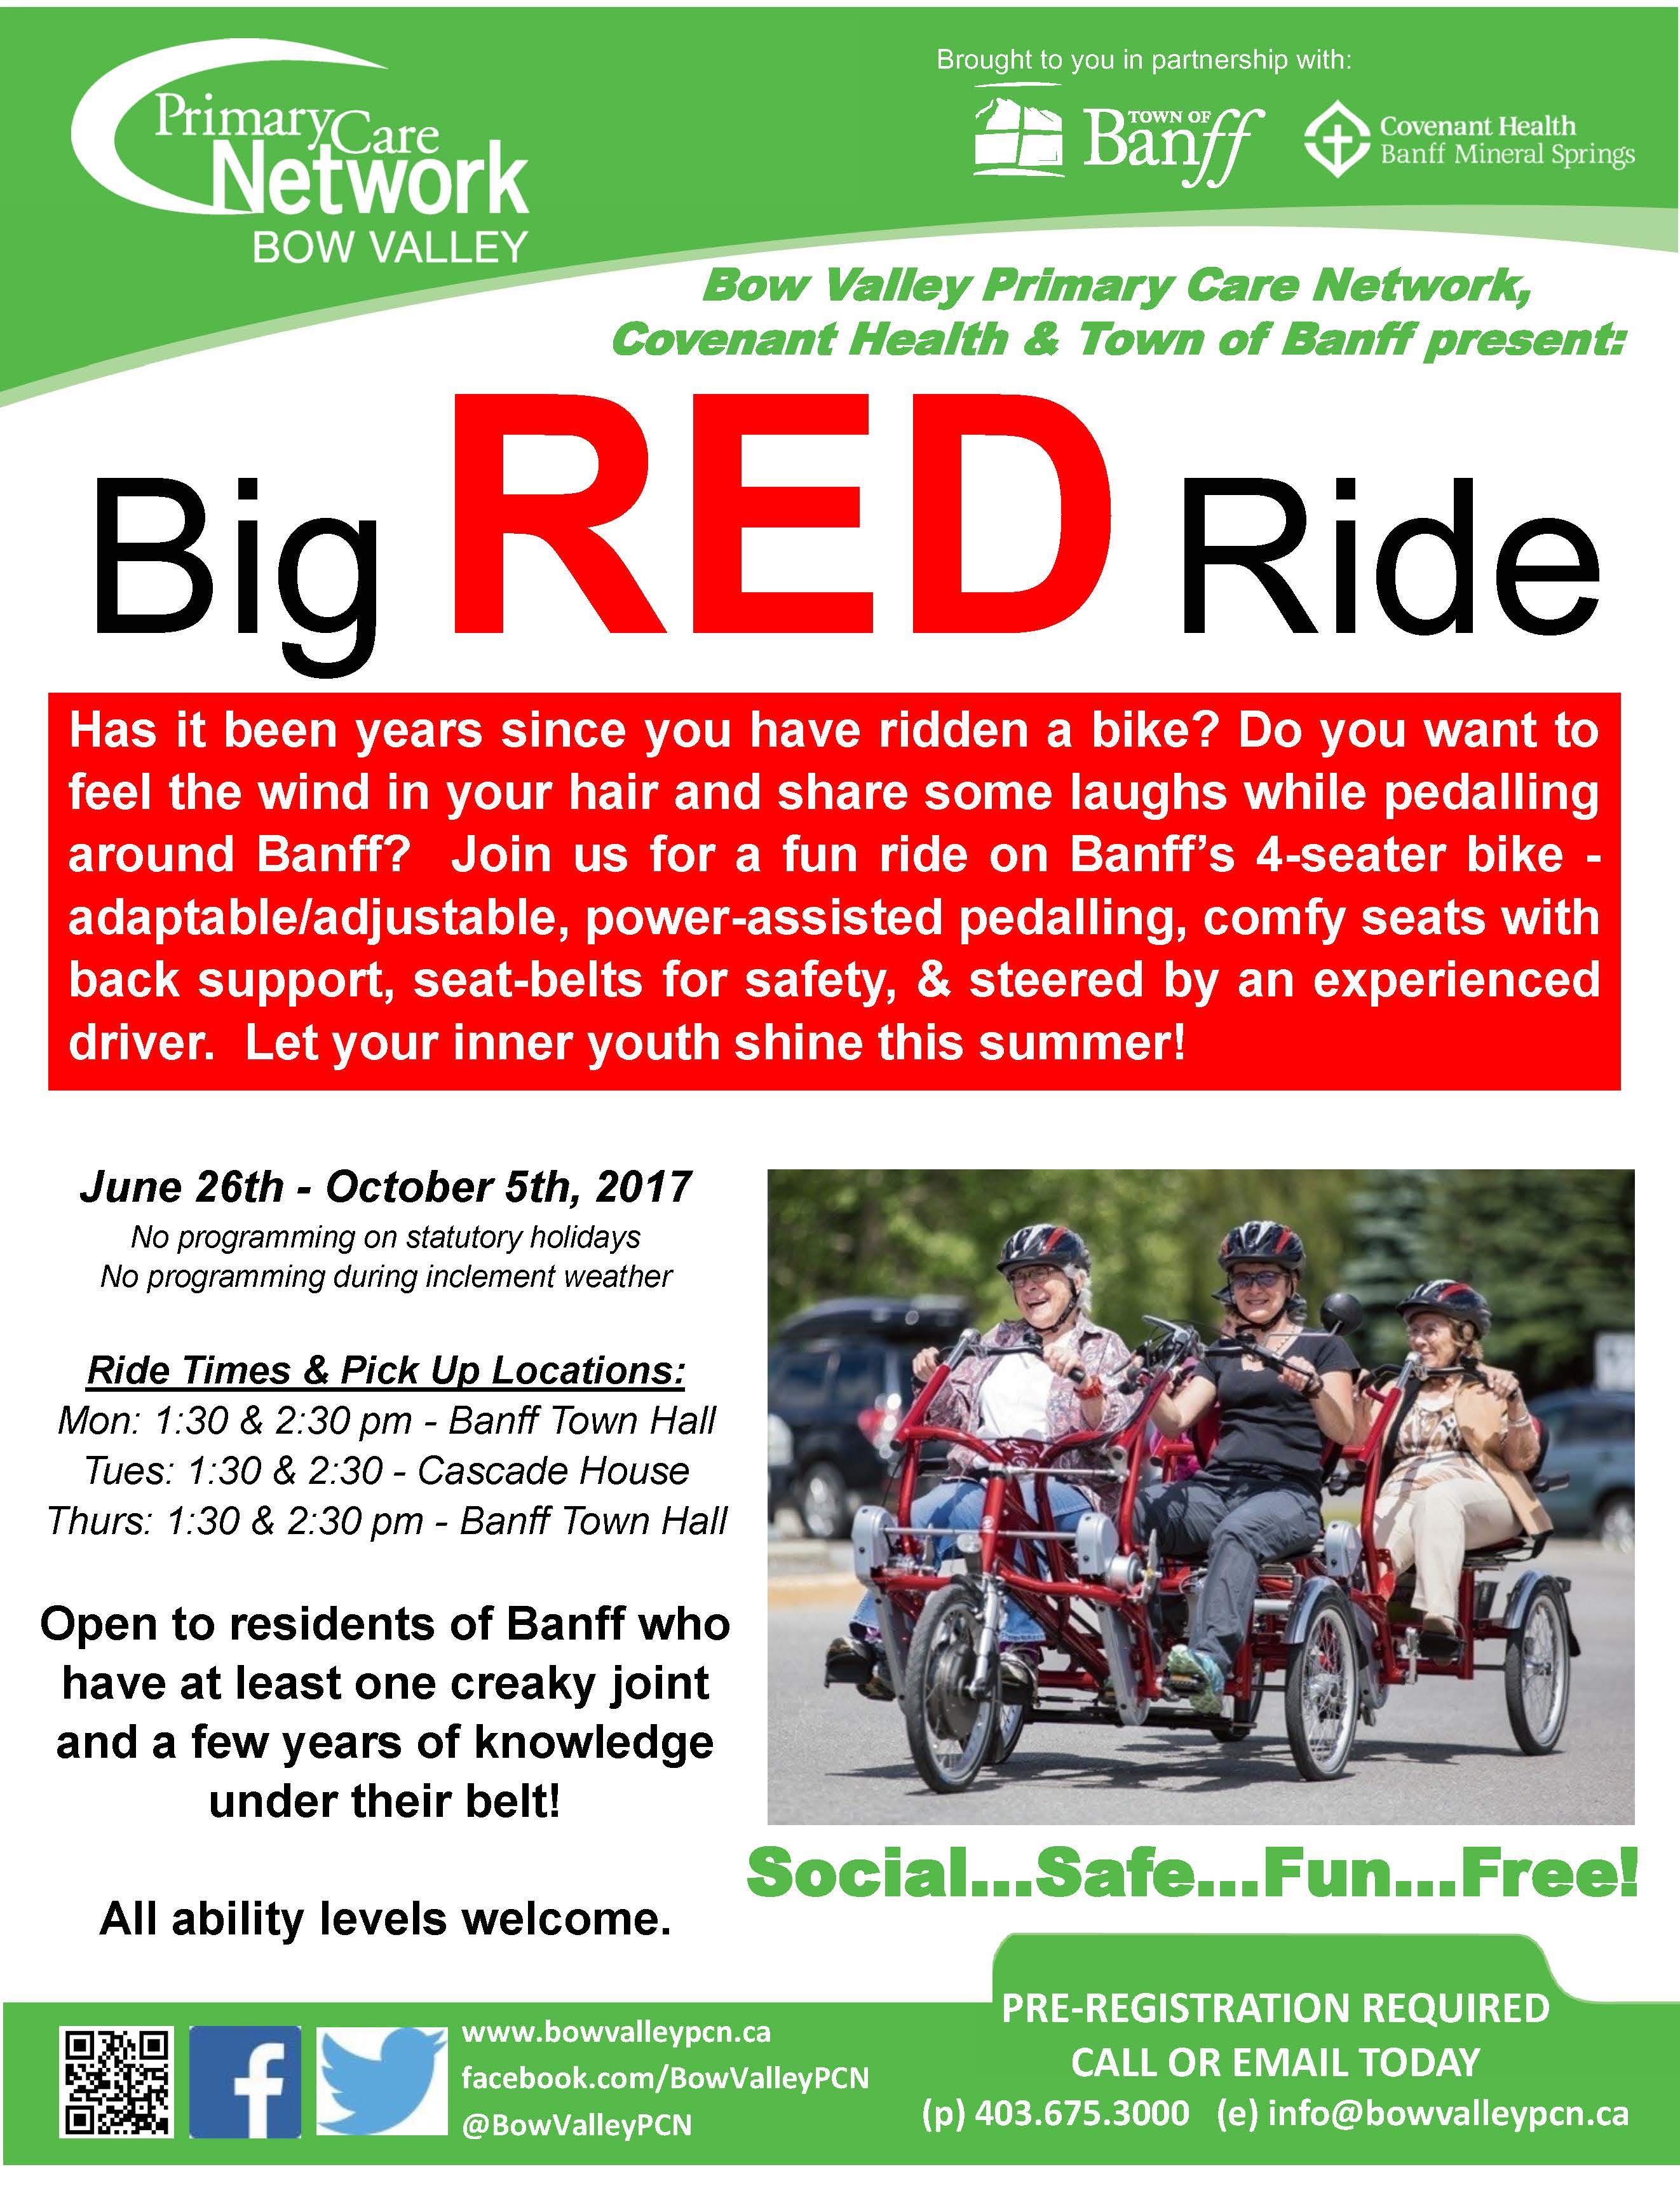 Big RED Ride